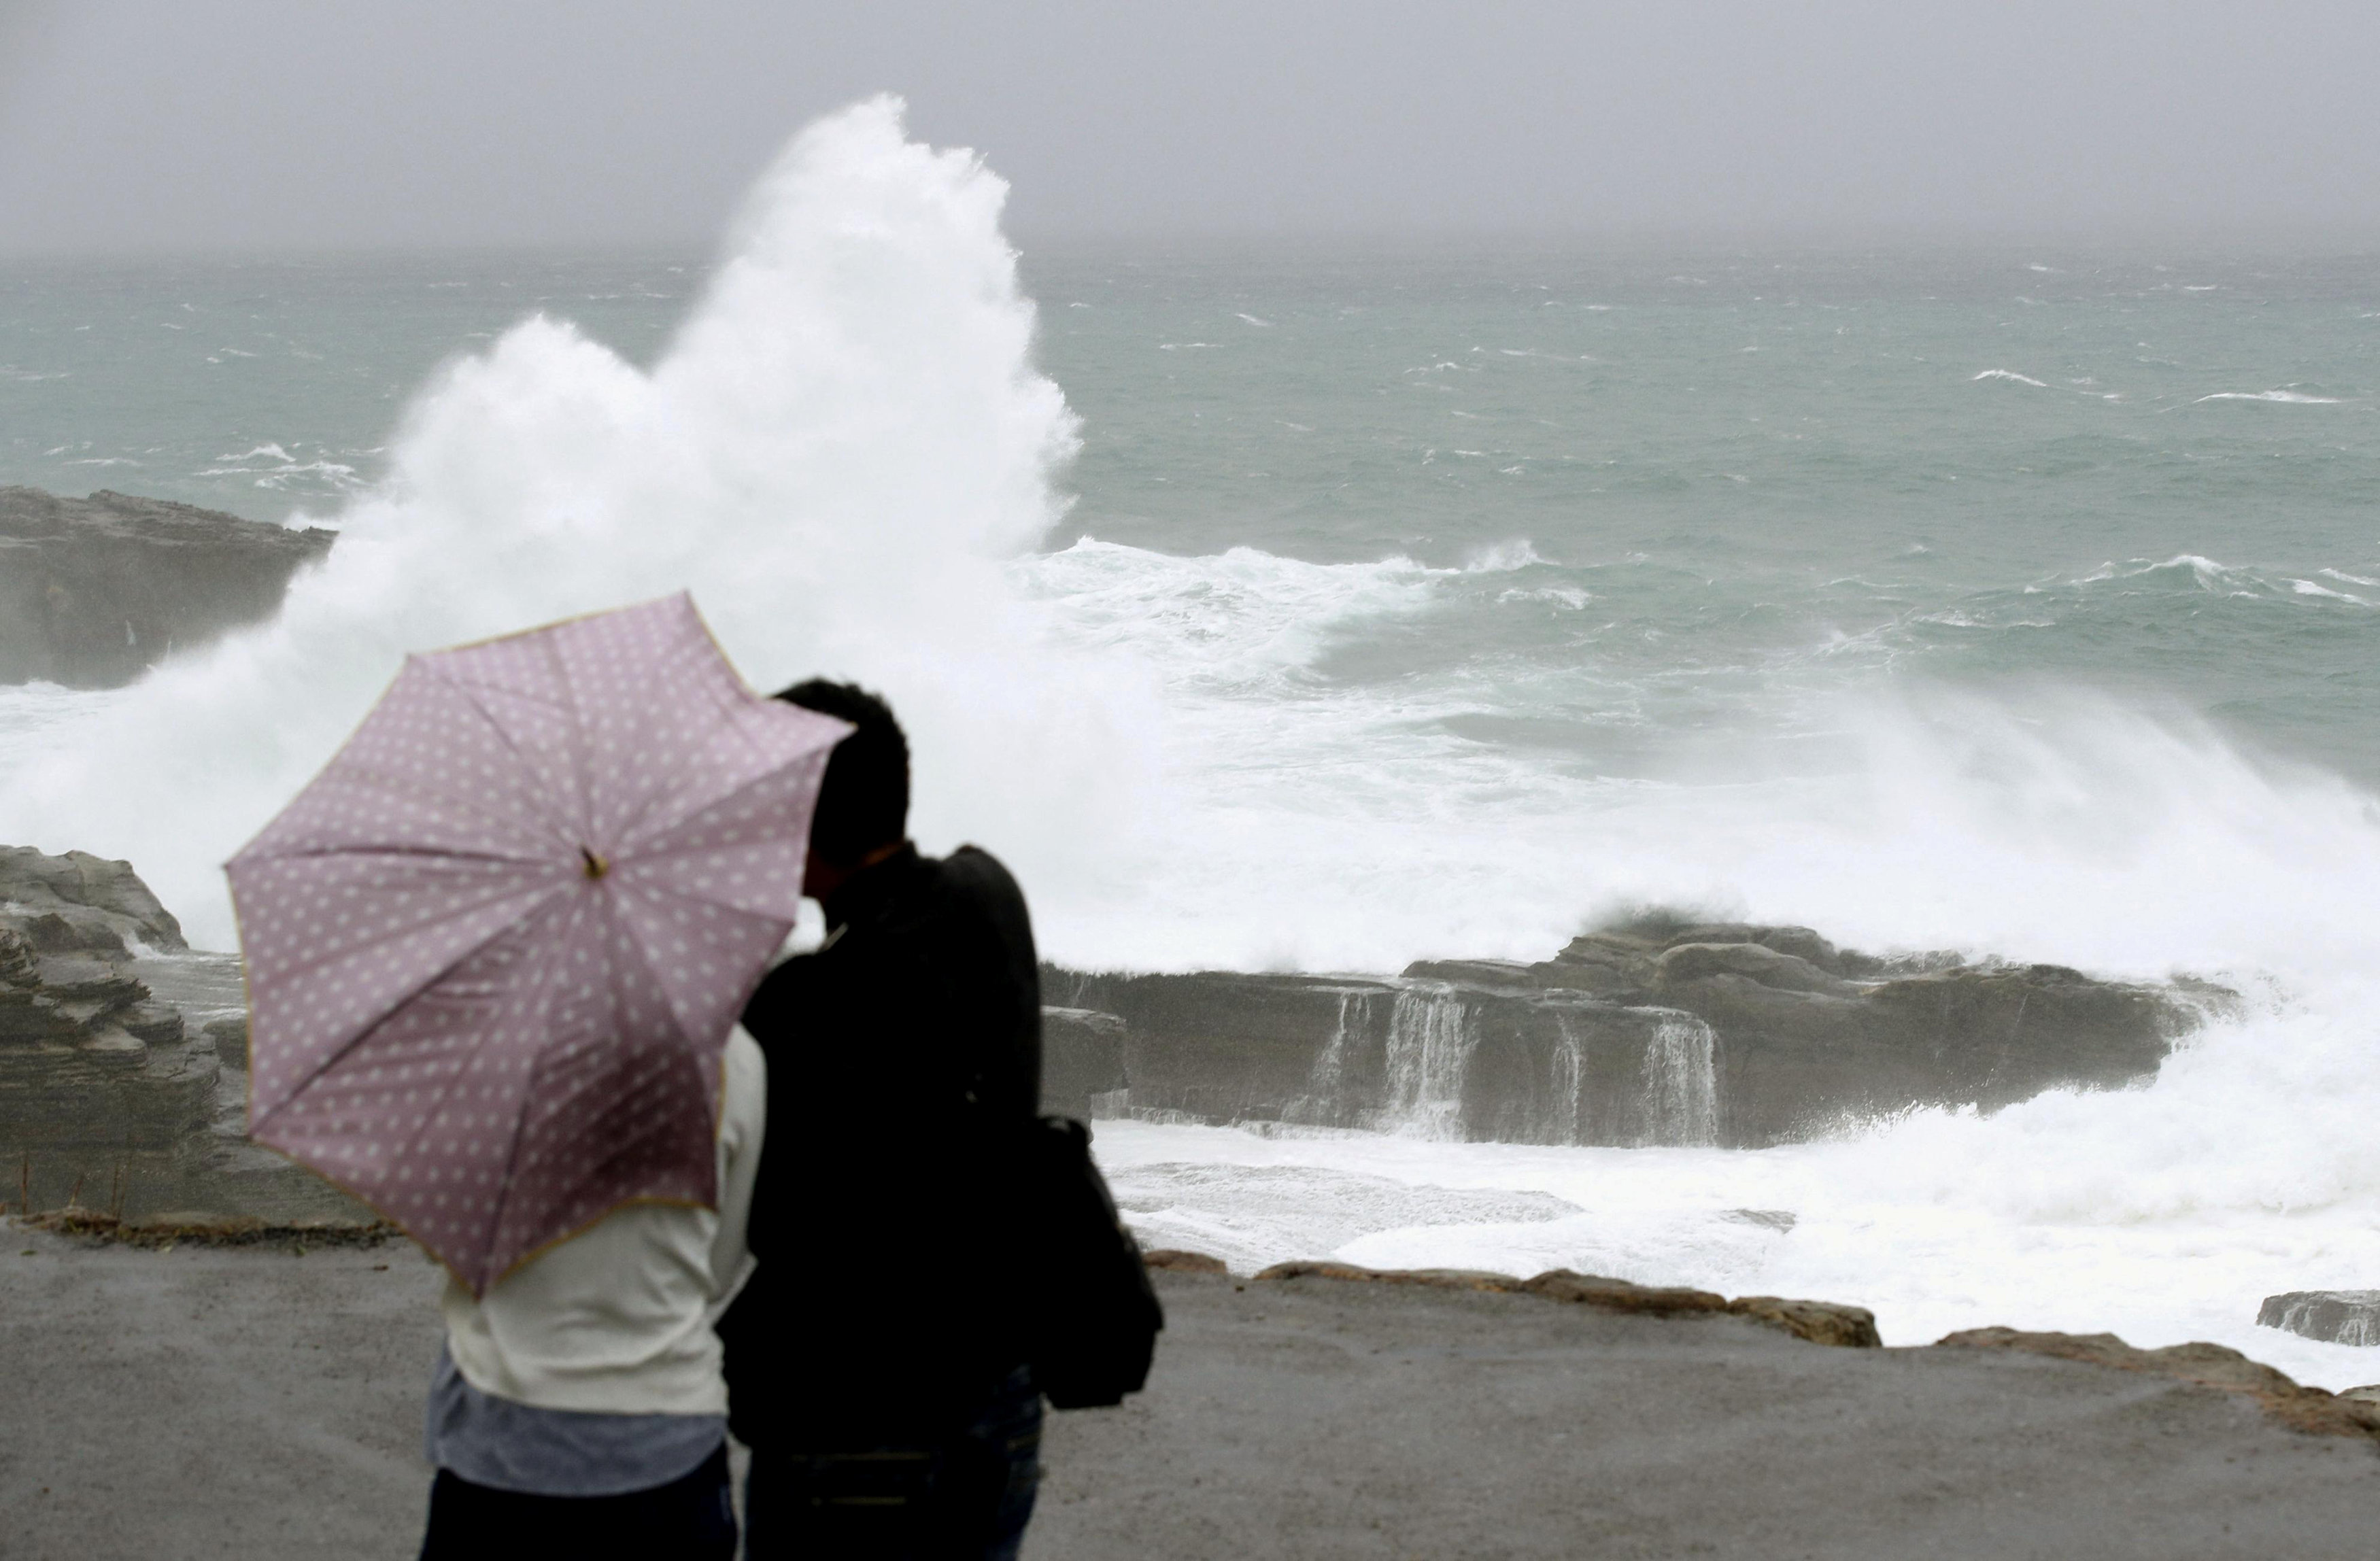 Typhoon Lan drenches Japan, tens of thousands advised to evacuate